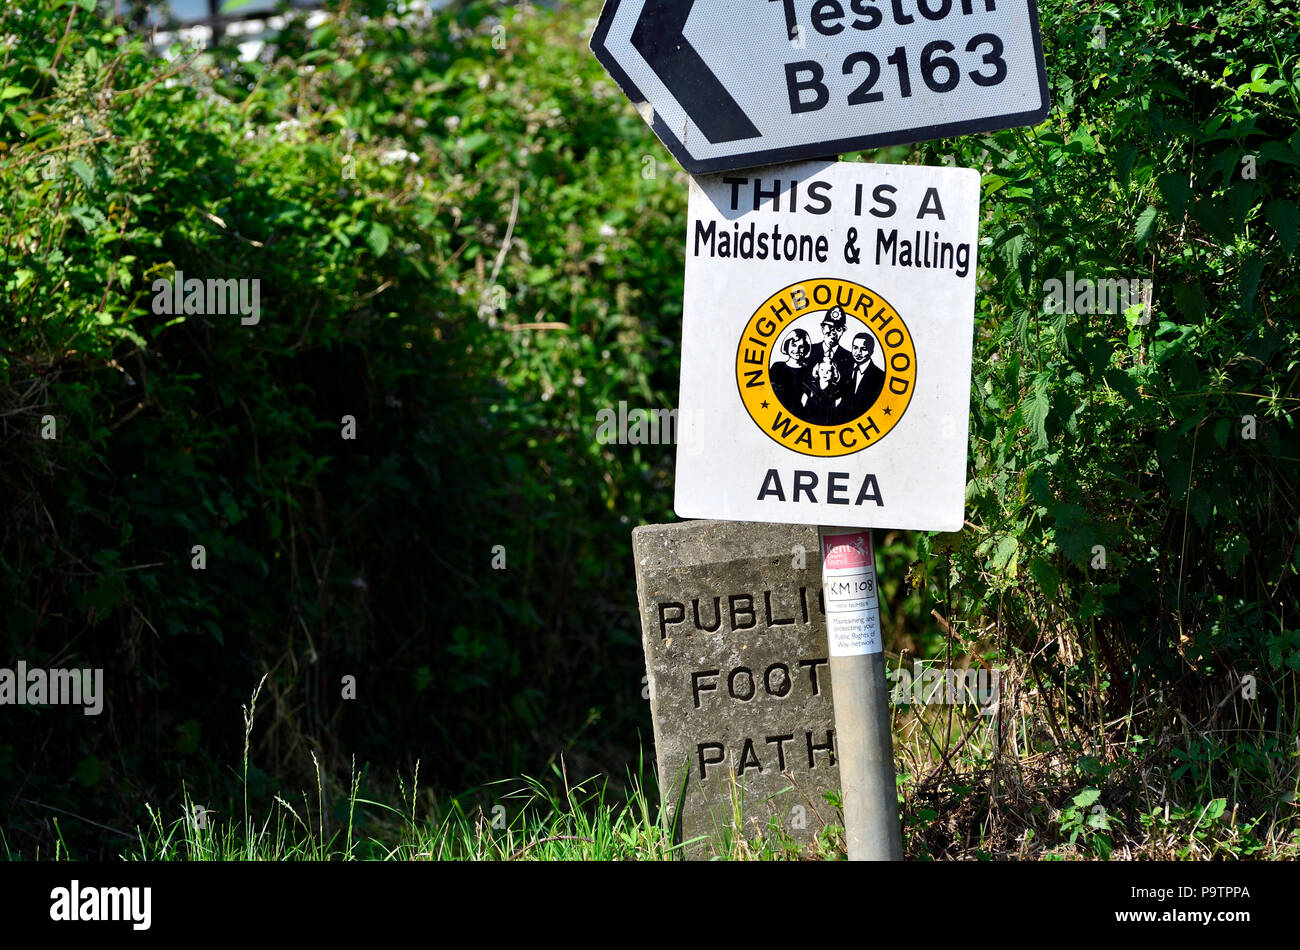 Neighbourhood Watch sign my a footpath and roadside in Boughton Monchelsea village, kent, England. - Stock Image